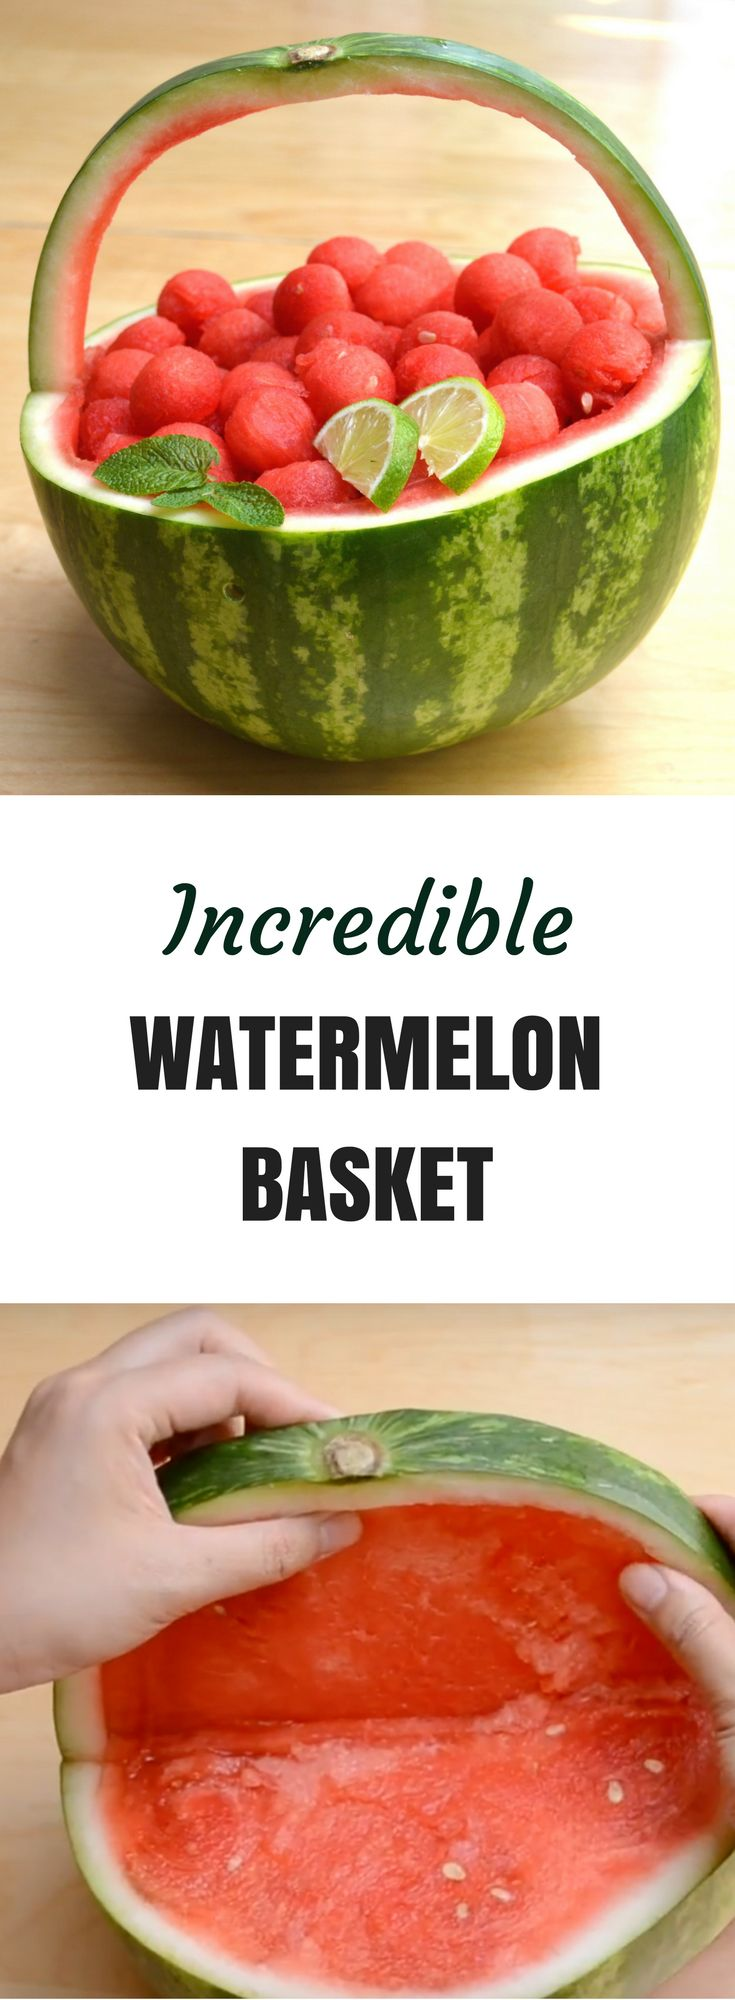 Best watermelon carving easy ideas on pinterest